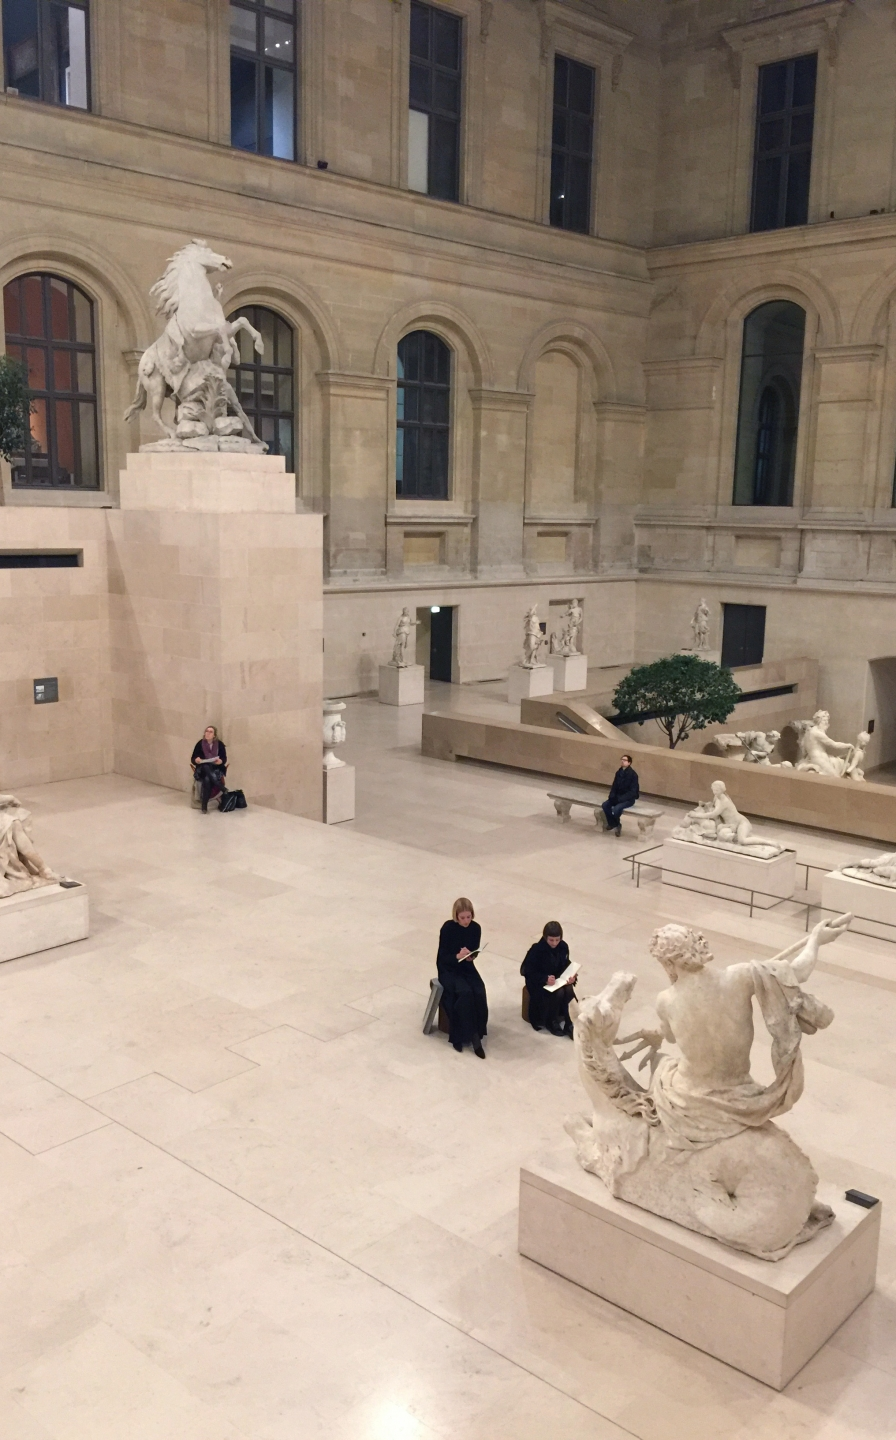 two women use softseating fanning stools as impromptu seats in the sculpture hall at the Louvre